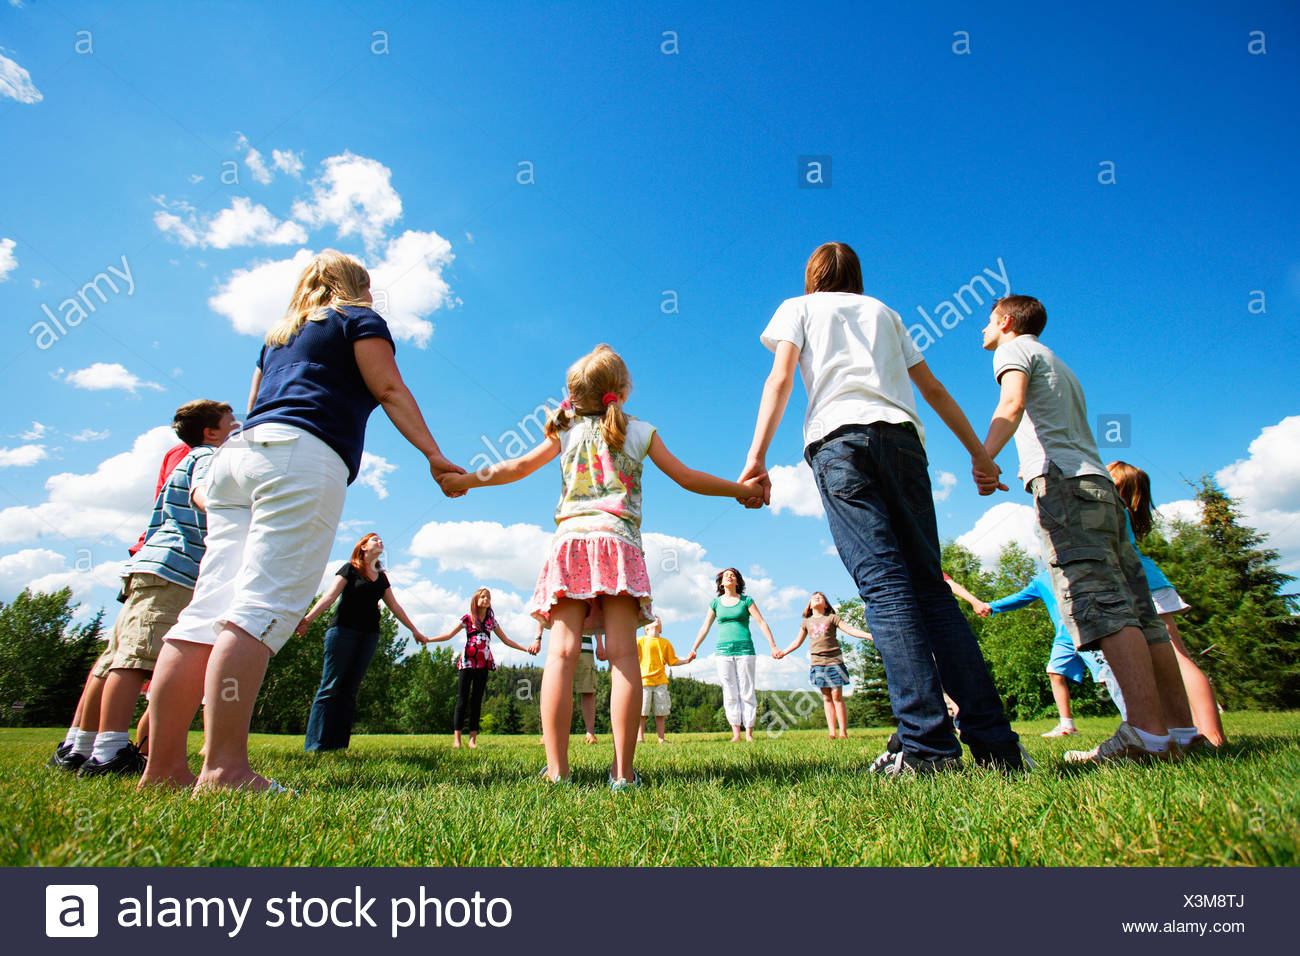 Holding hands in a circle - Stock Image